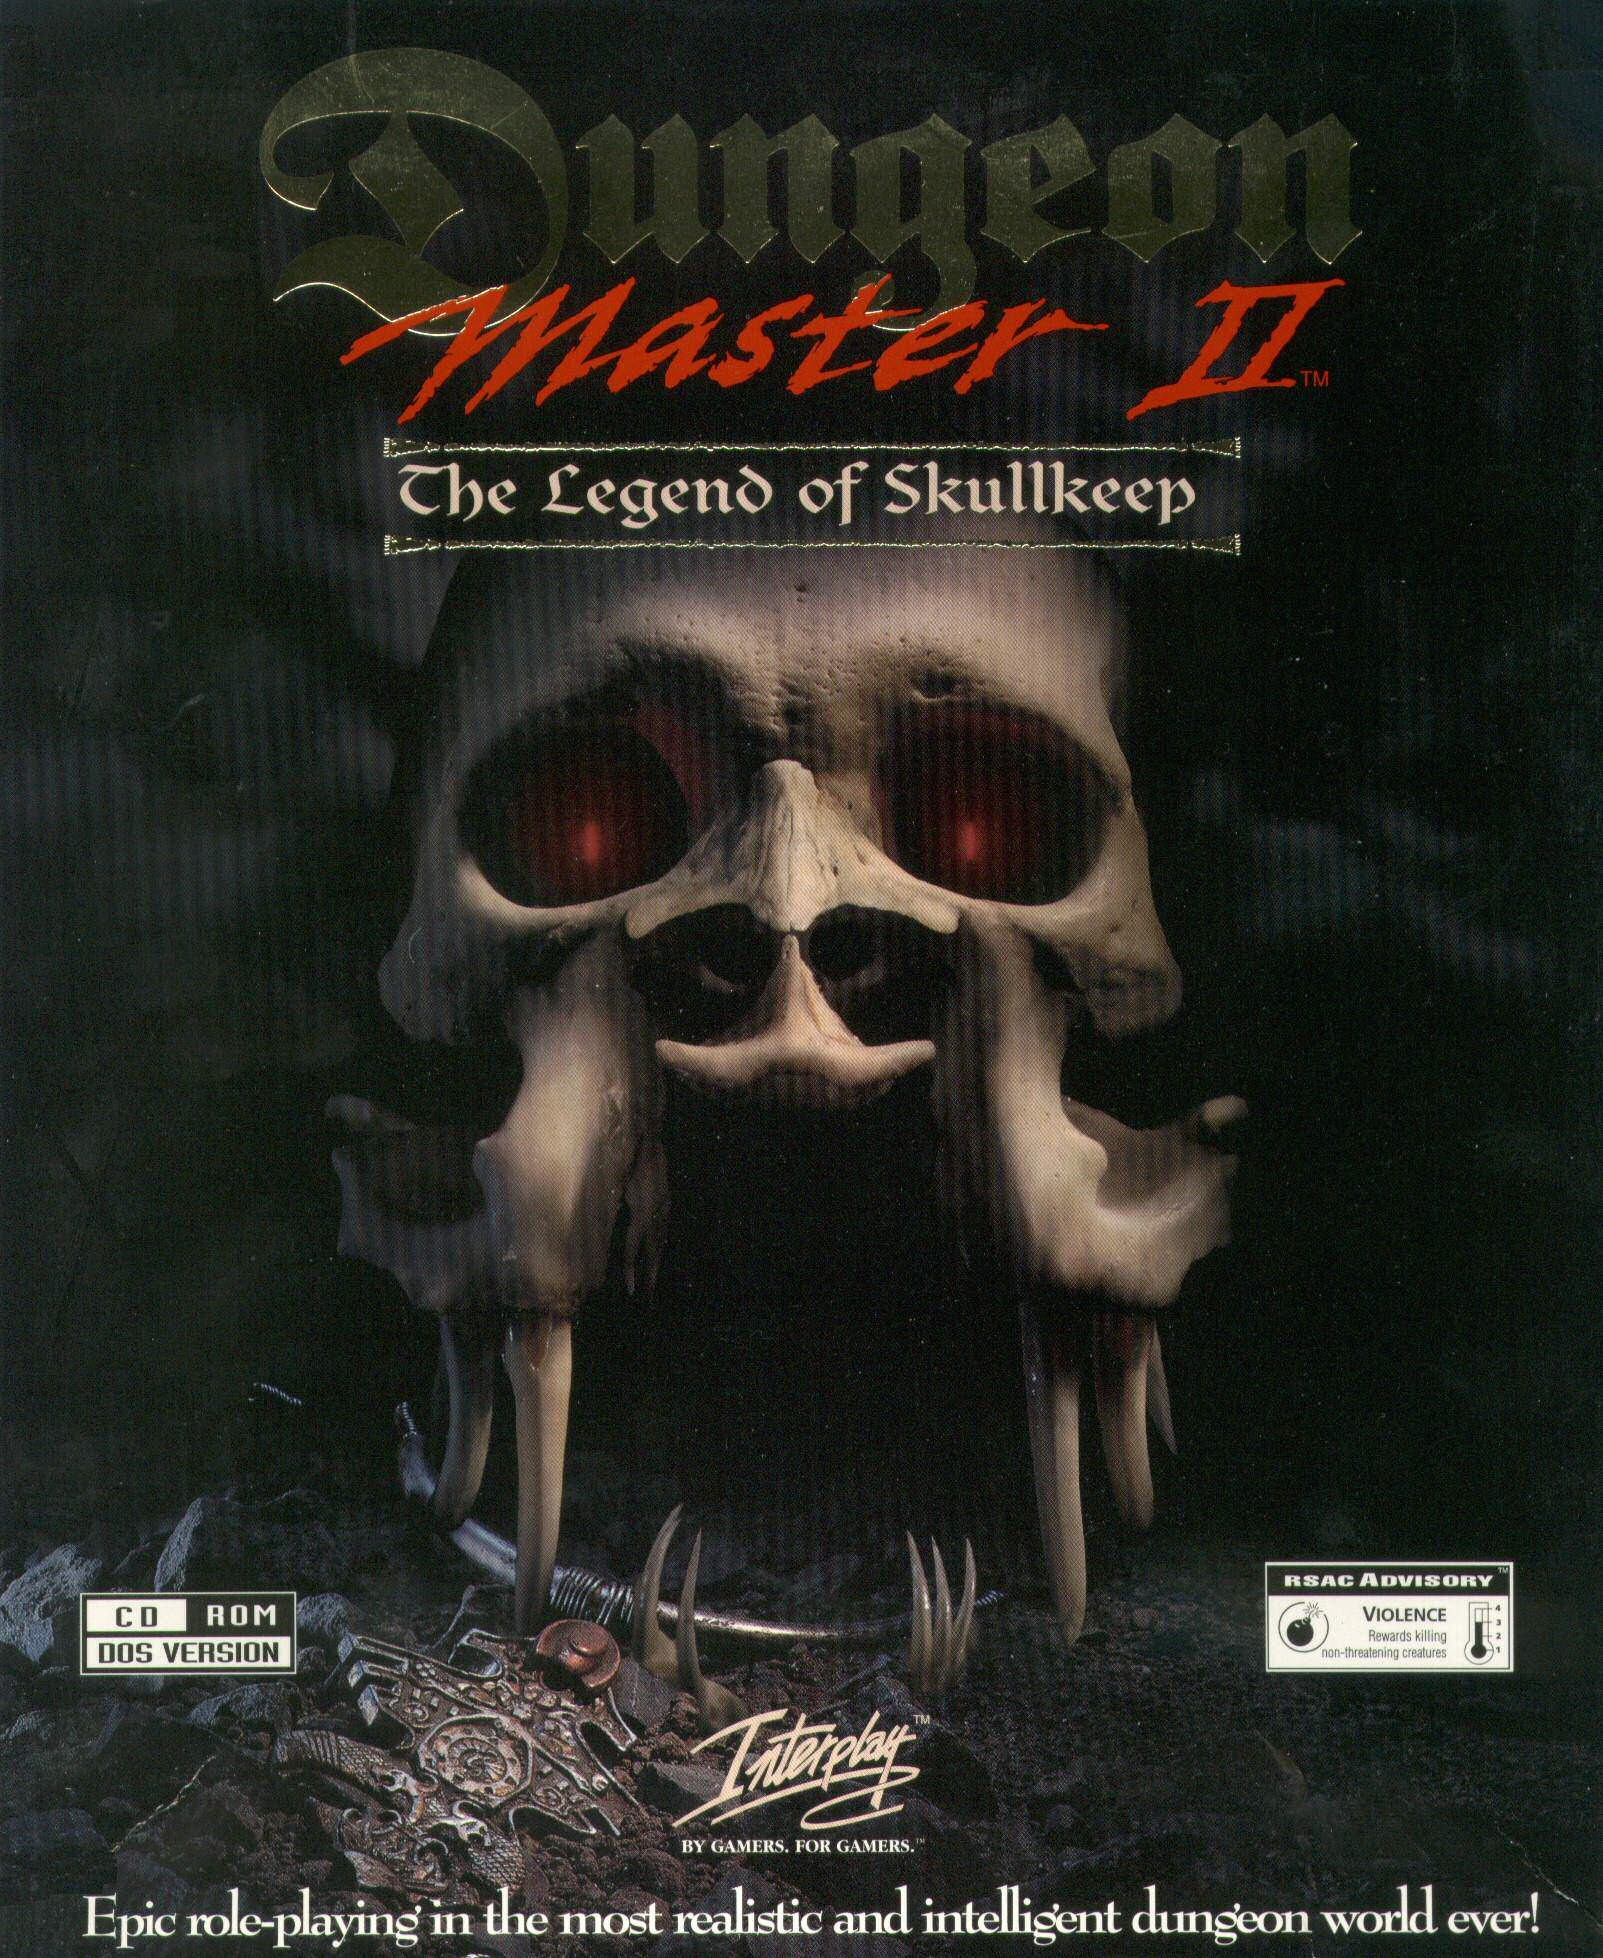 Dungeon Master II for PC (English, CD) - Outer Box Front